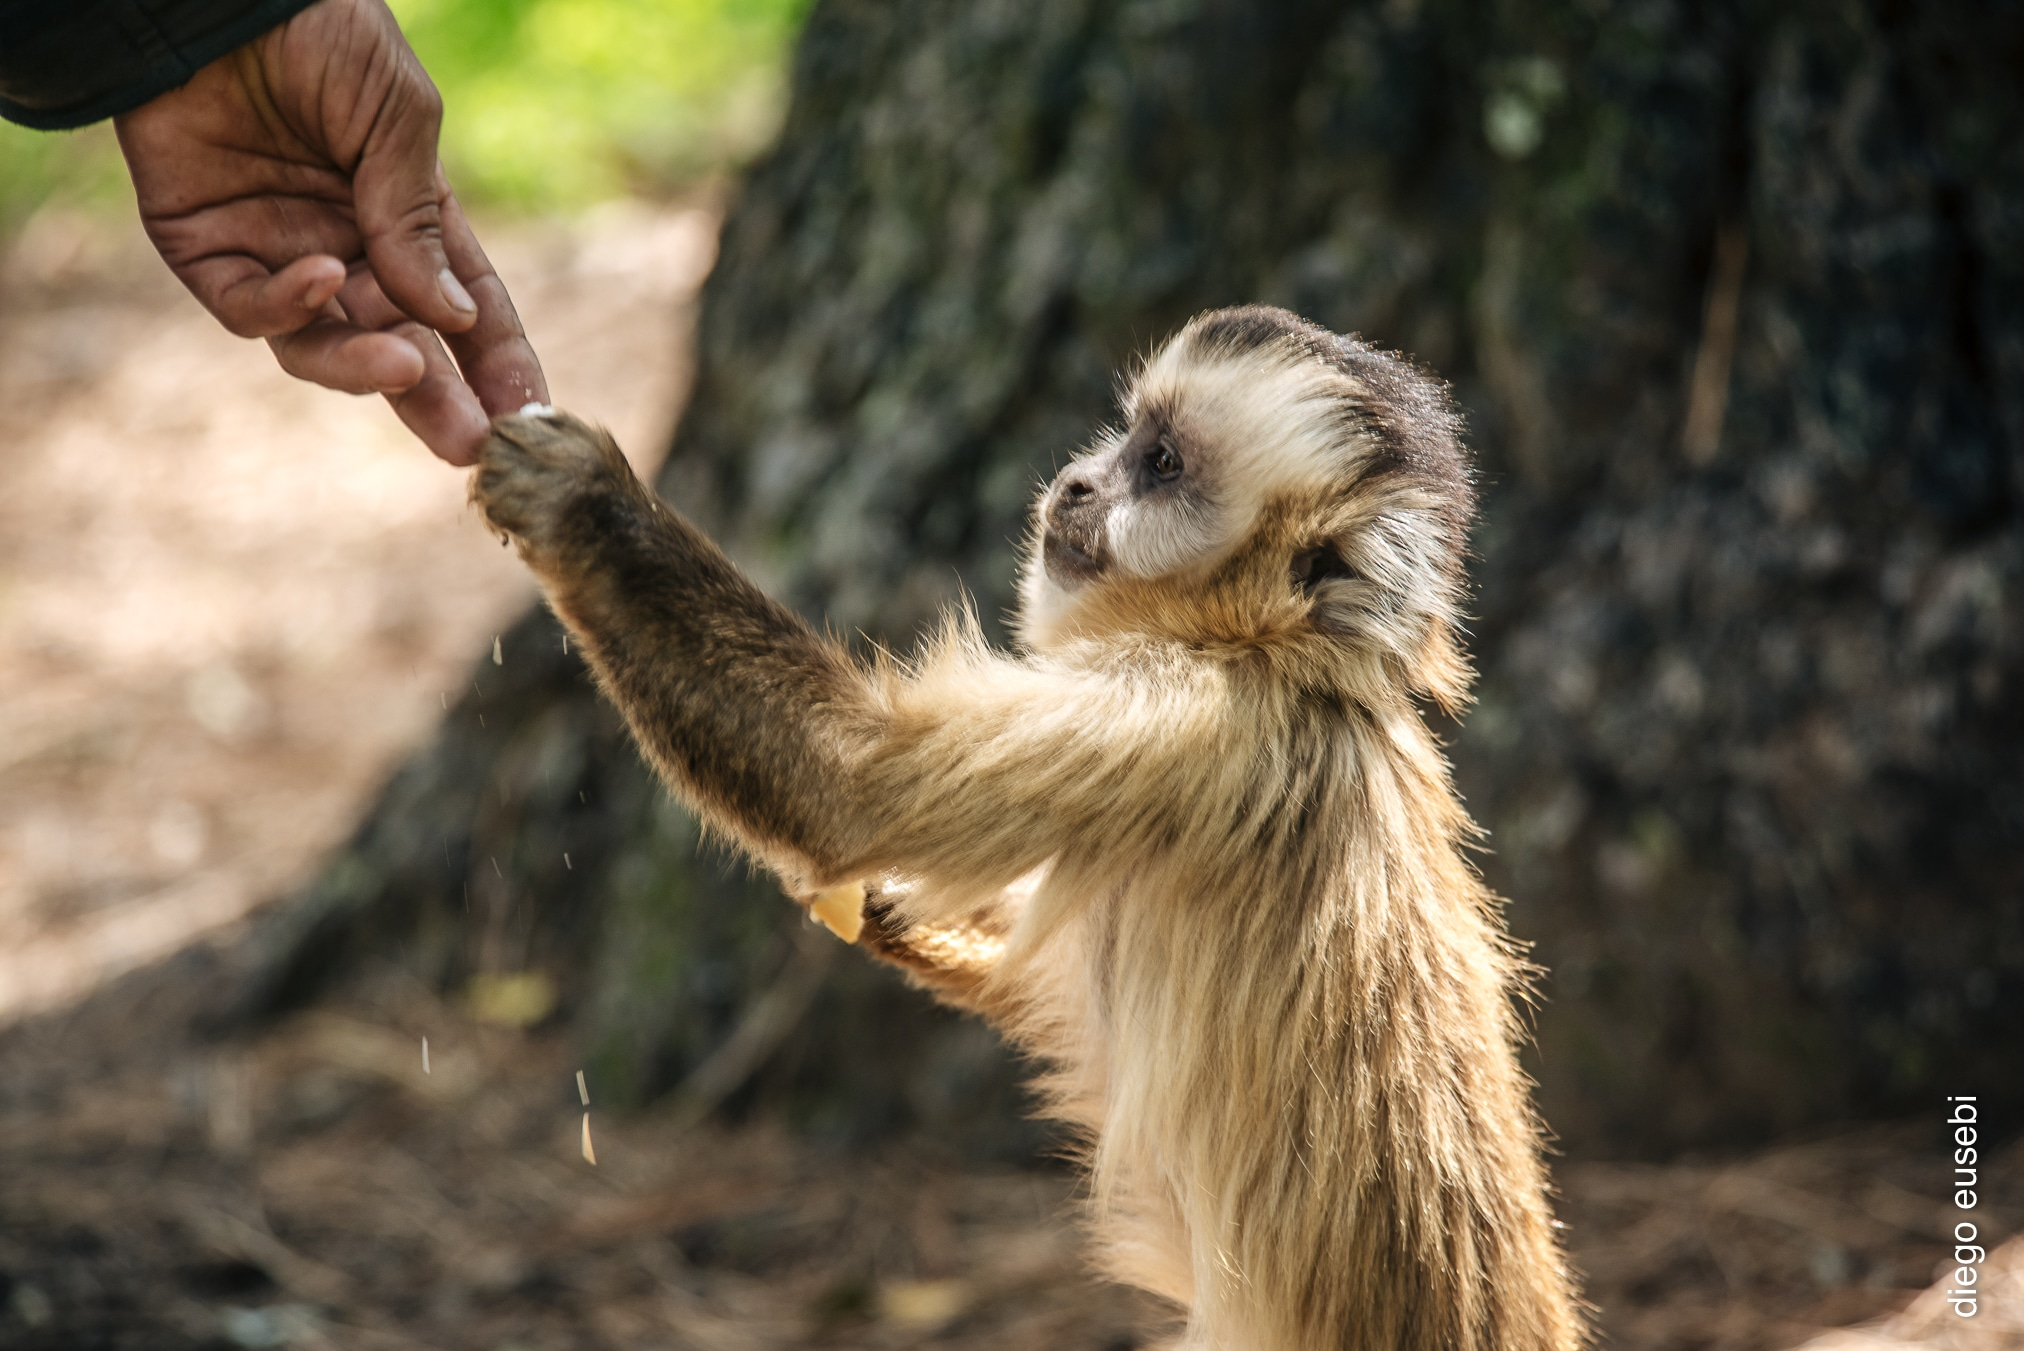 Young Monkey at the Argentina Sanctuary